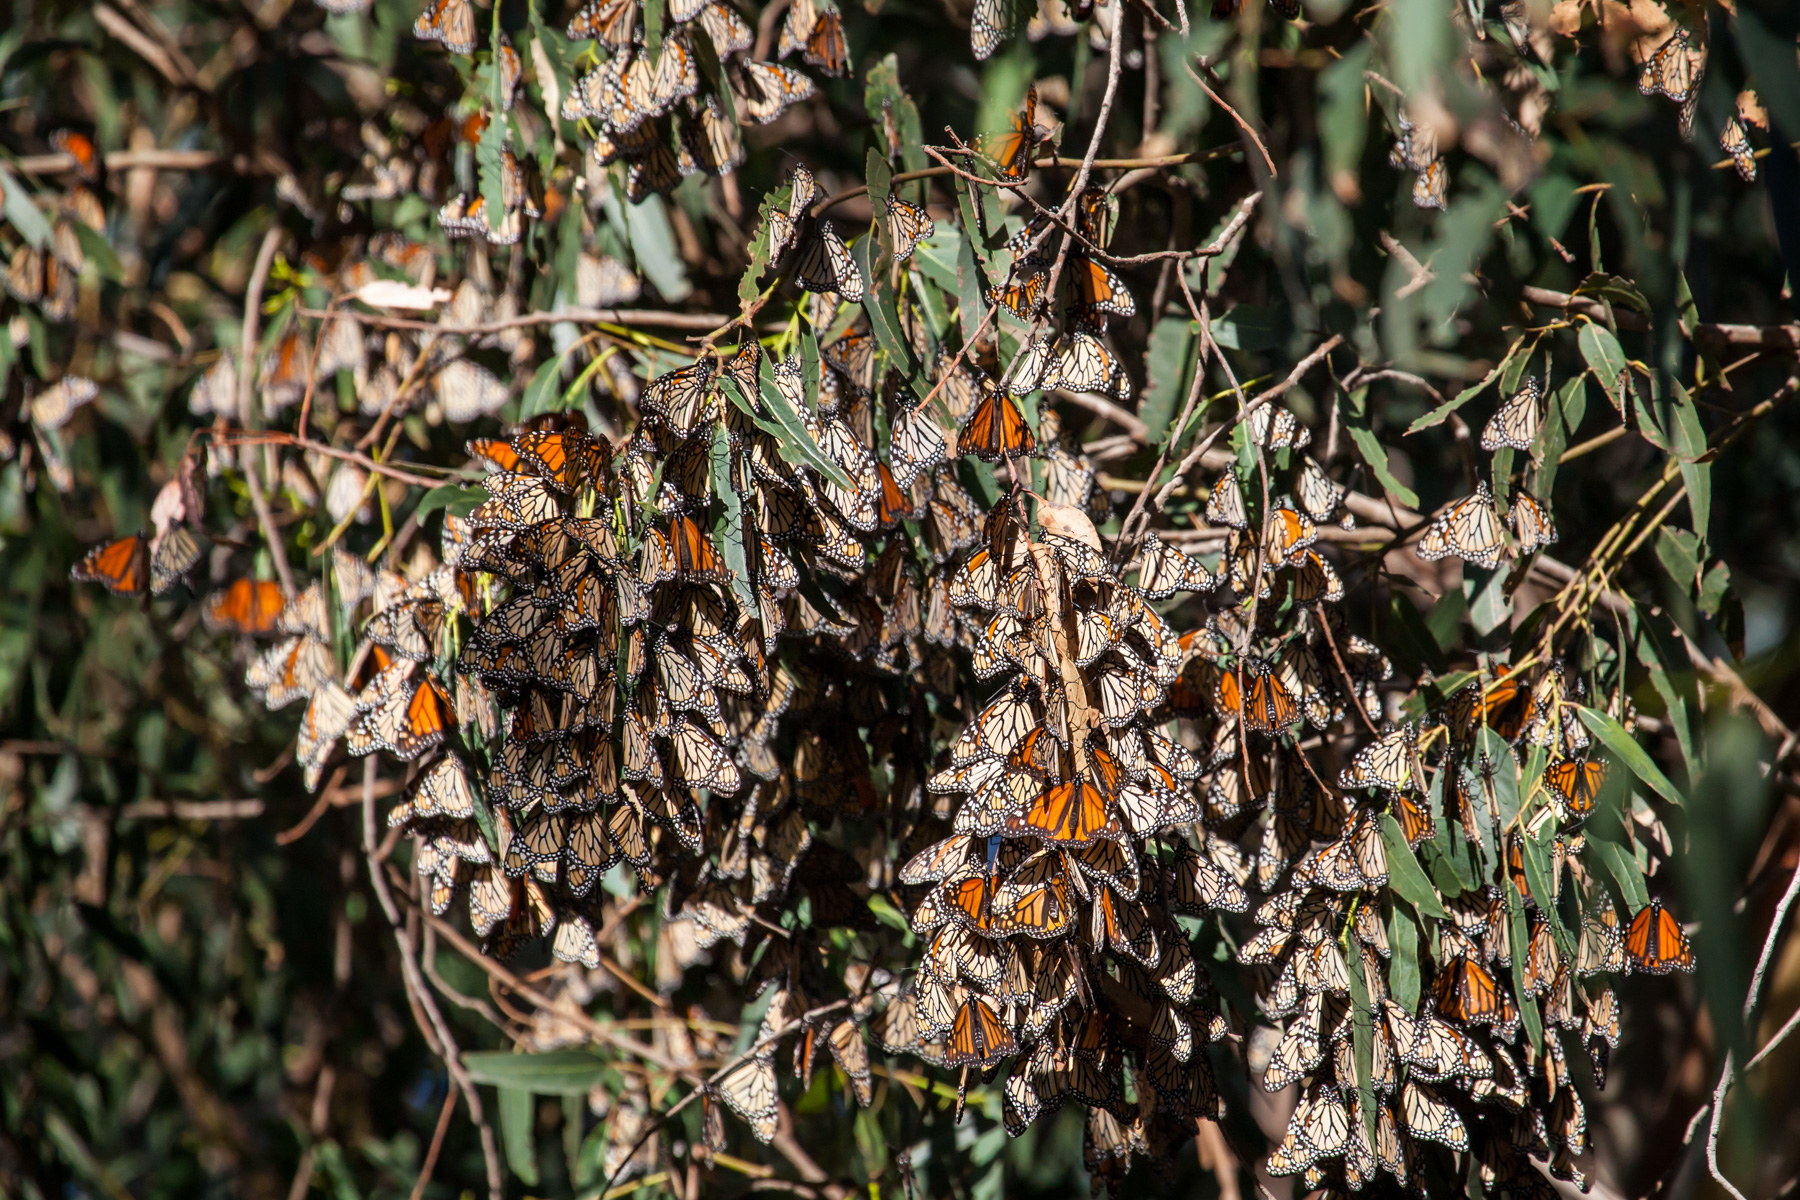 Big cluster of Monarch Butterflies